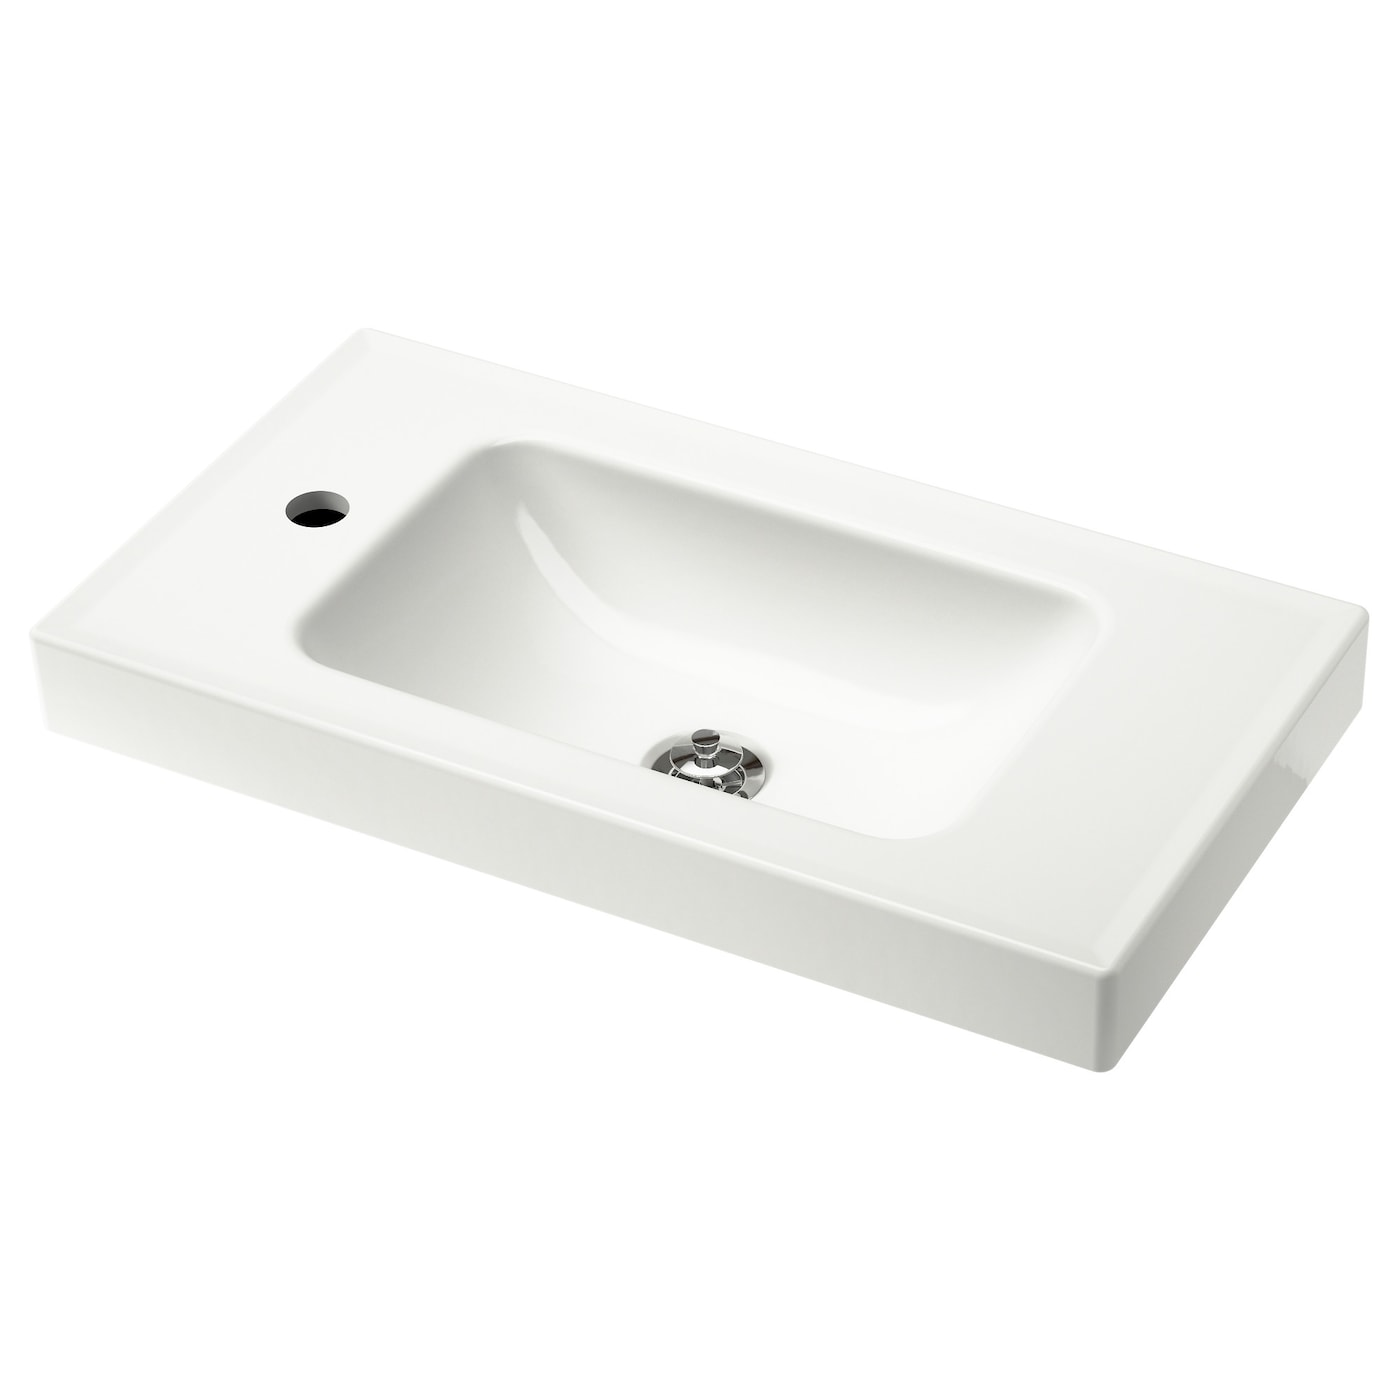 Bathroom sinks with options for everyone - Ikea Hagaviken Single Wash Basin 10 Year Guarantee Read About The Terms In The